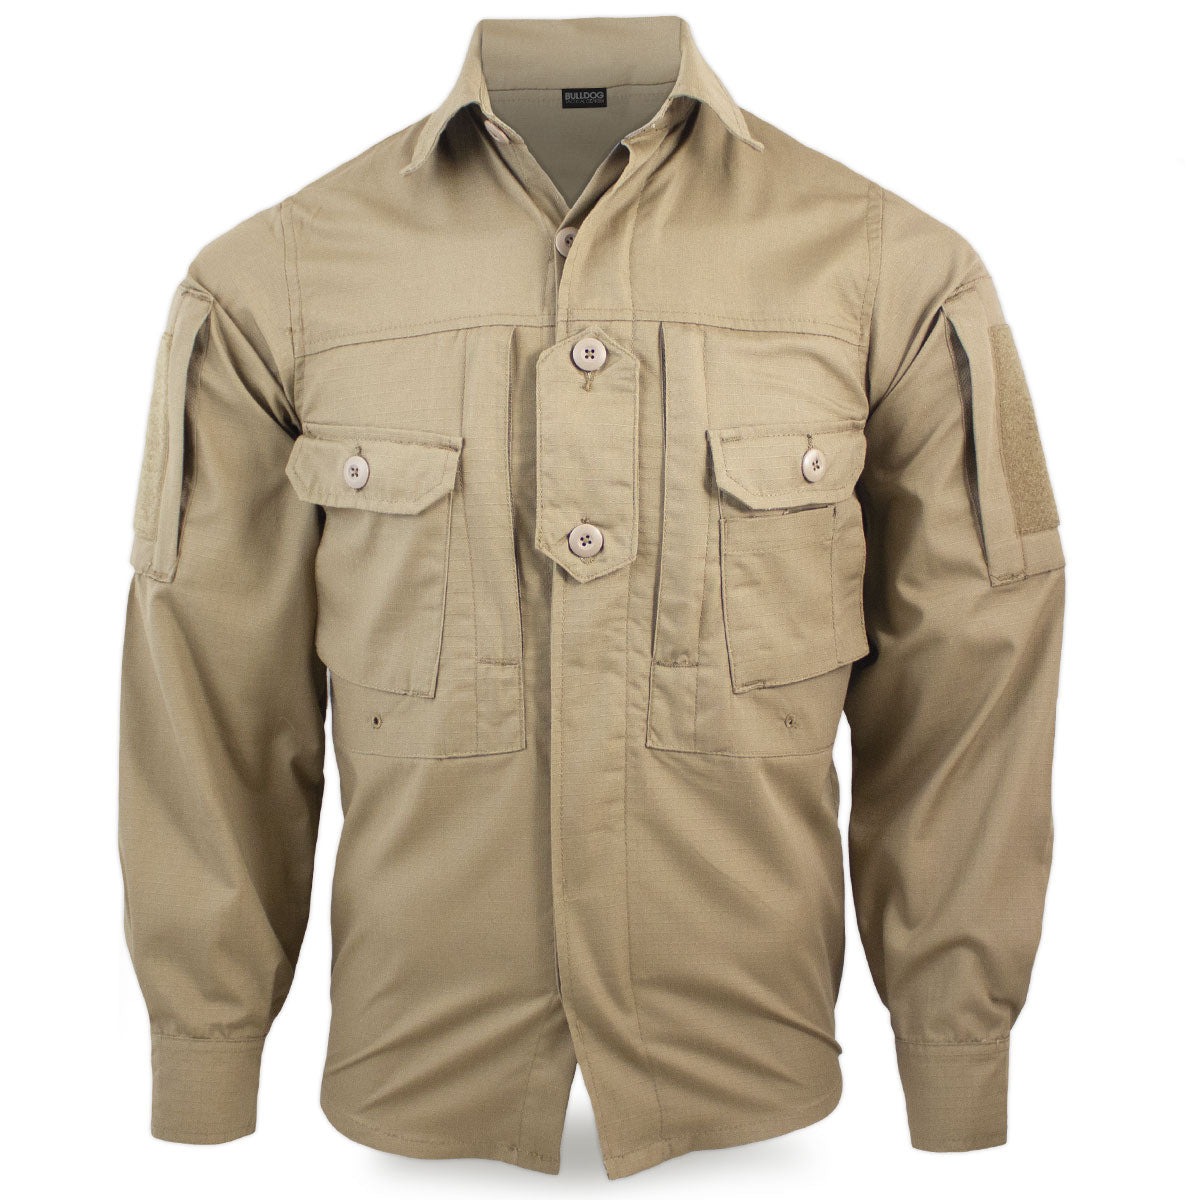 Rogue Field Shirt | Bulldog Tactical Gear